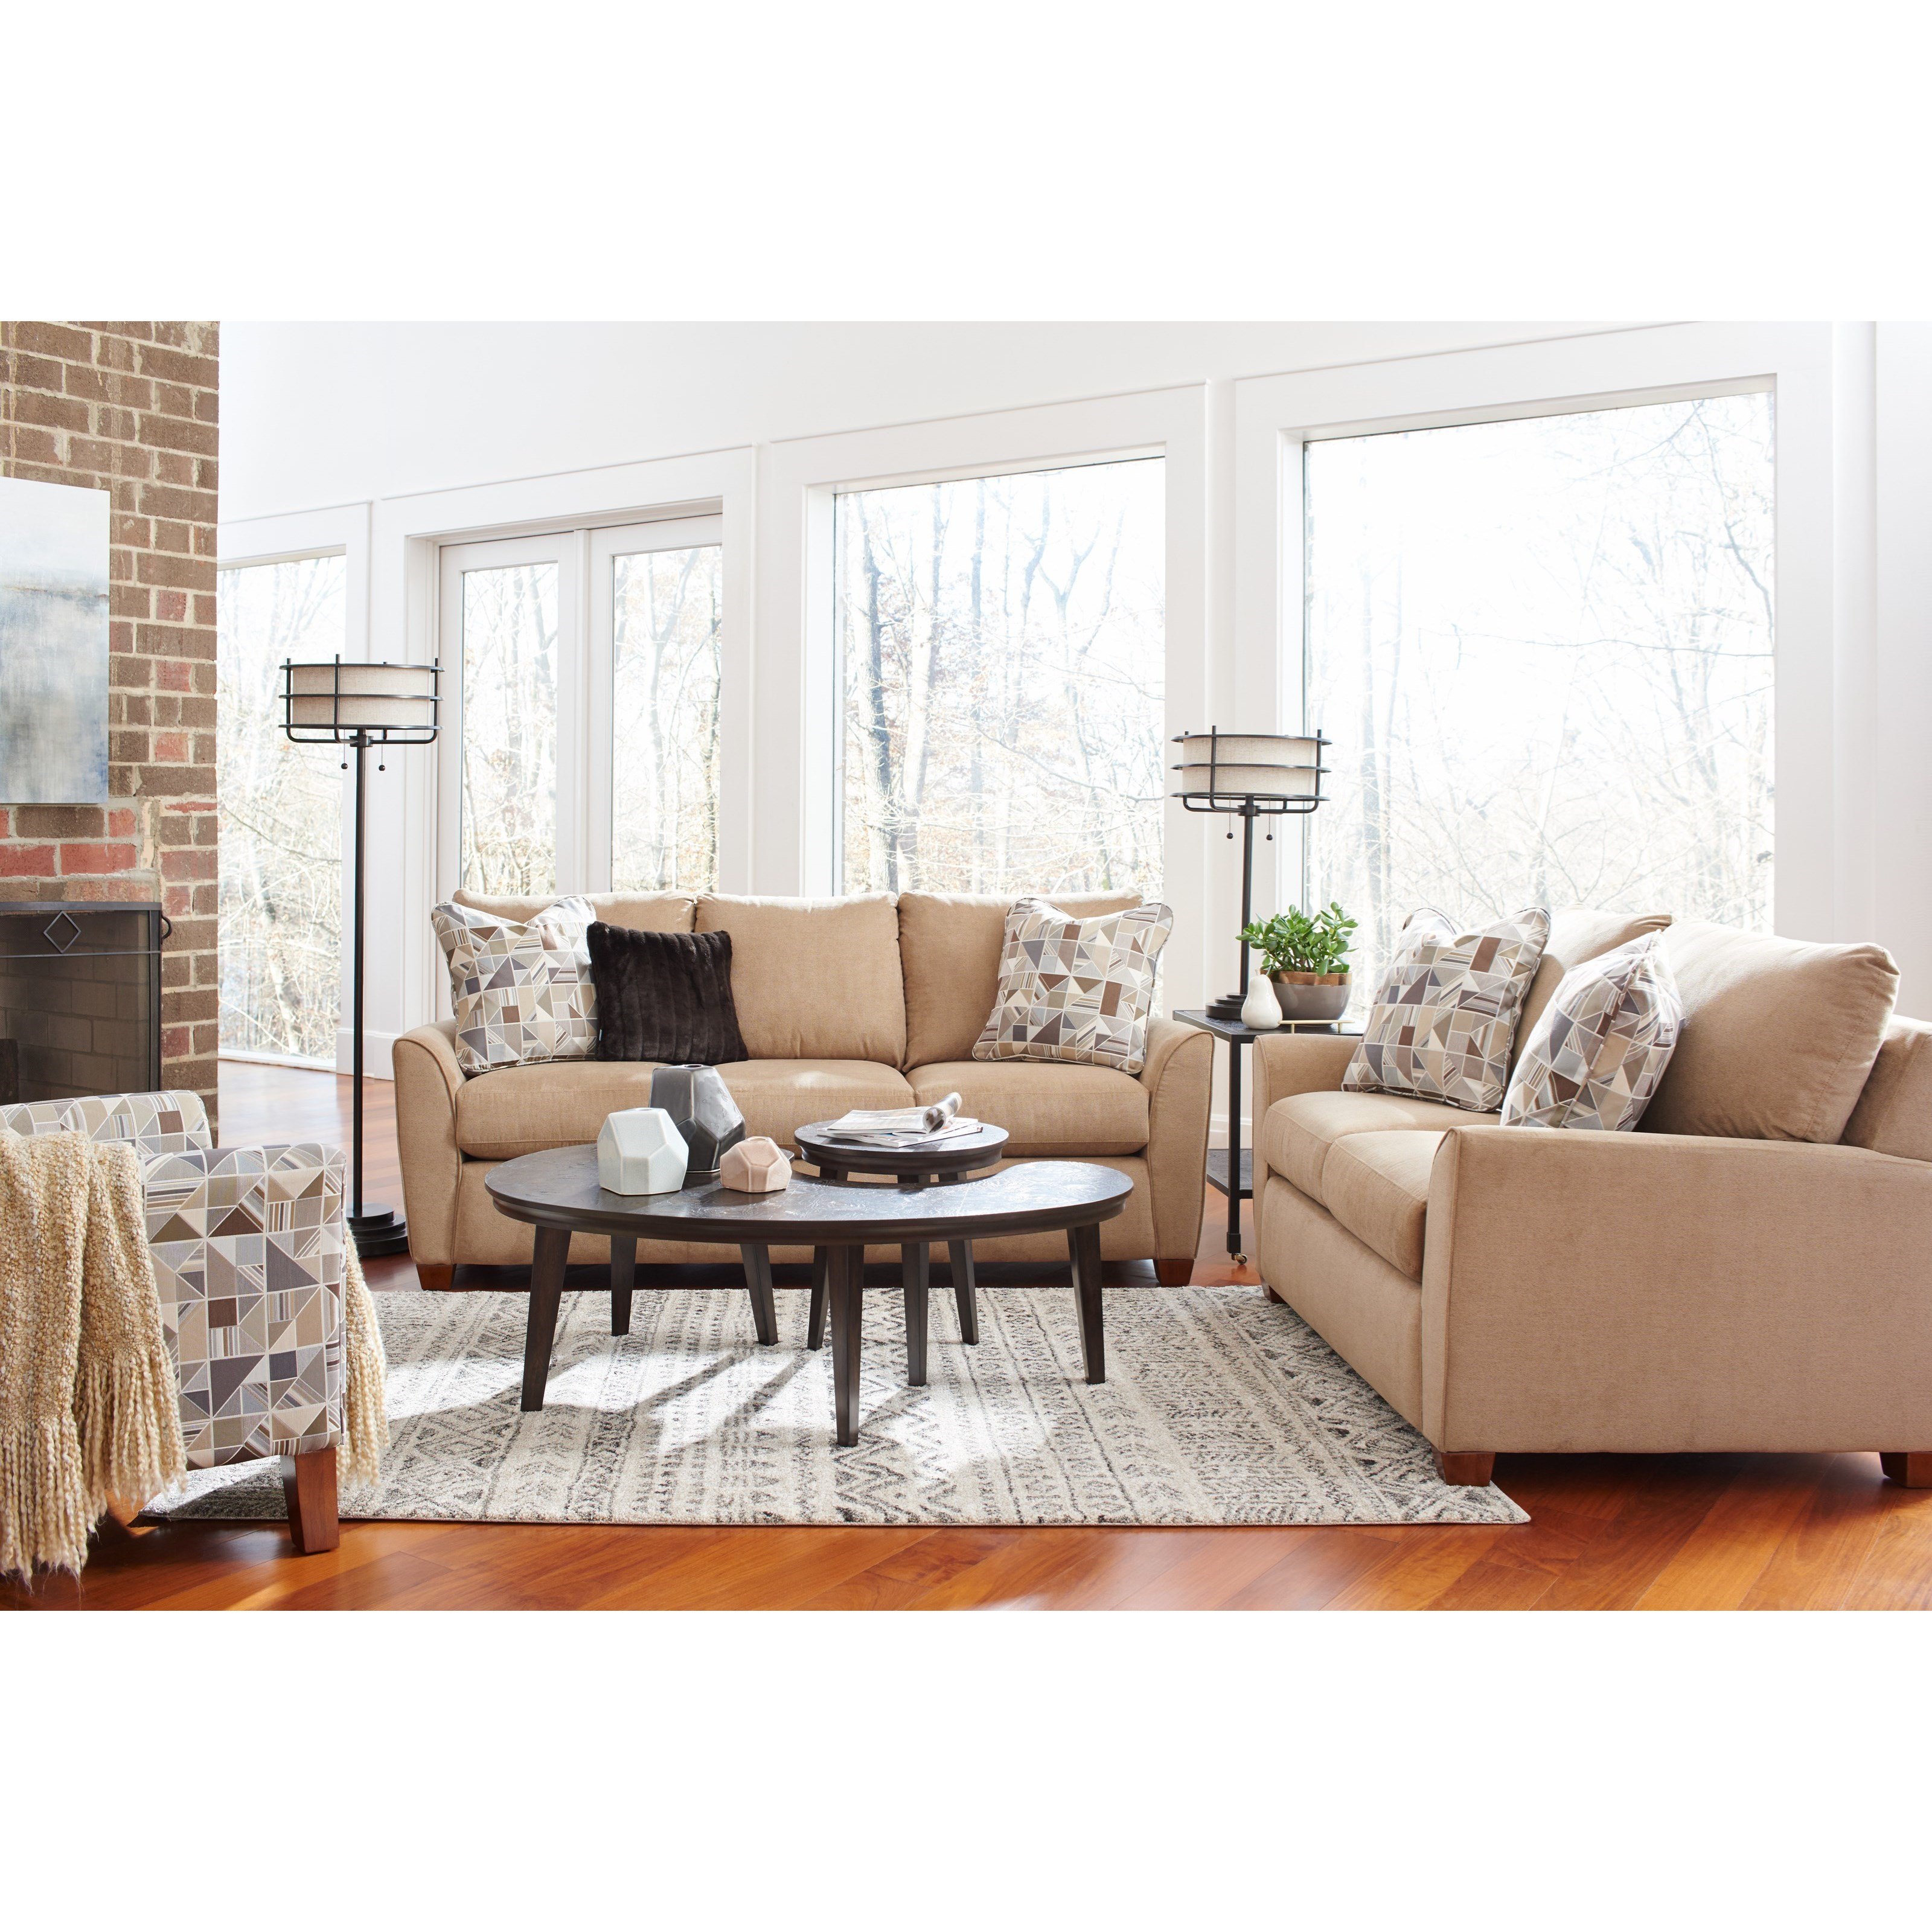 Amy Living Room Group by La-Z-Boy at Houston's Yuma Furniture